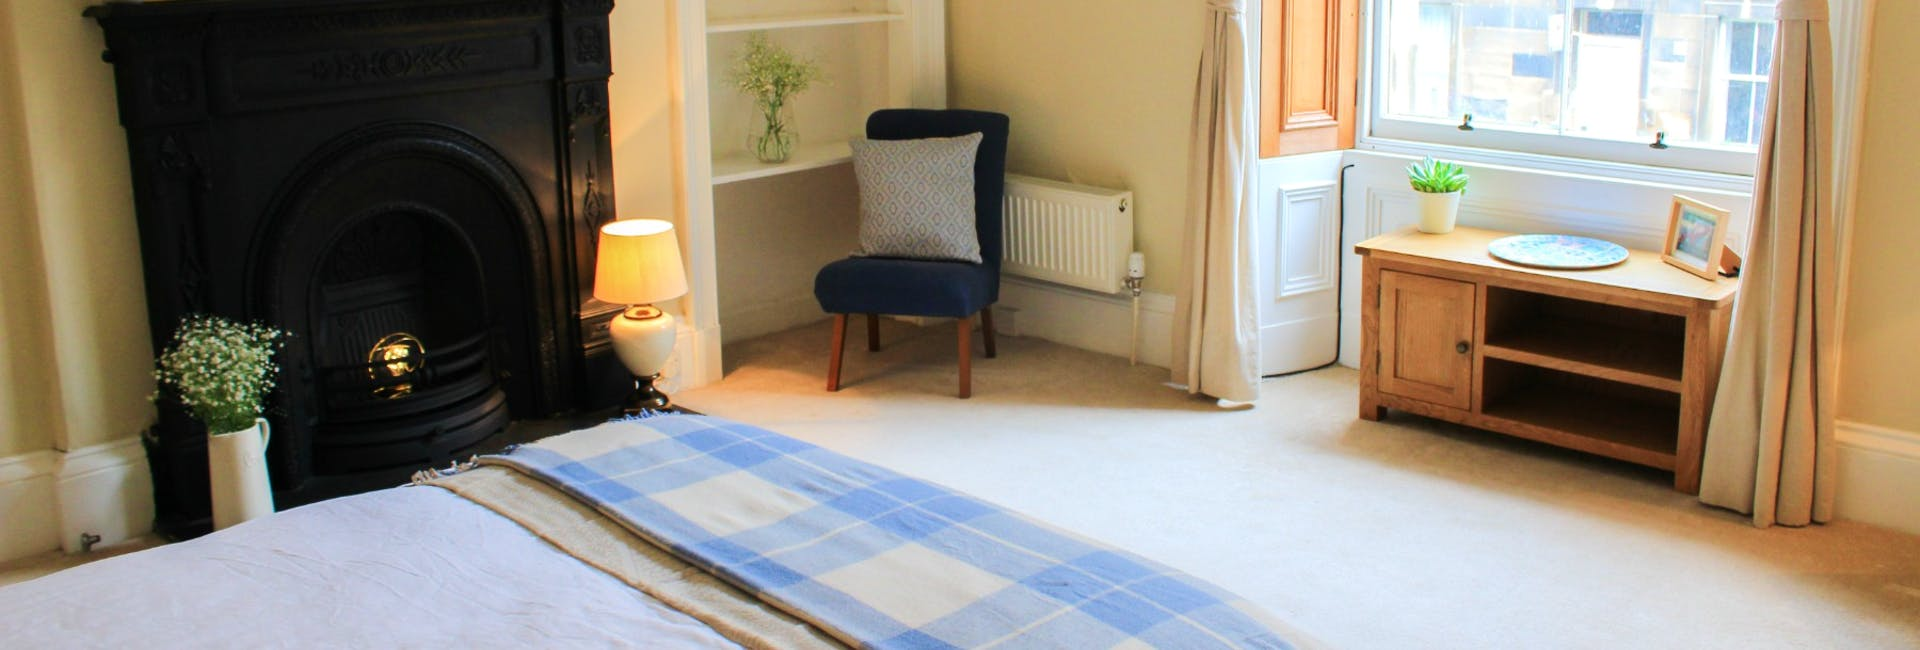 Featured Image for Livingstone Place P378 Lauriston and Bruntsfield Edinburgh